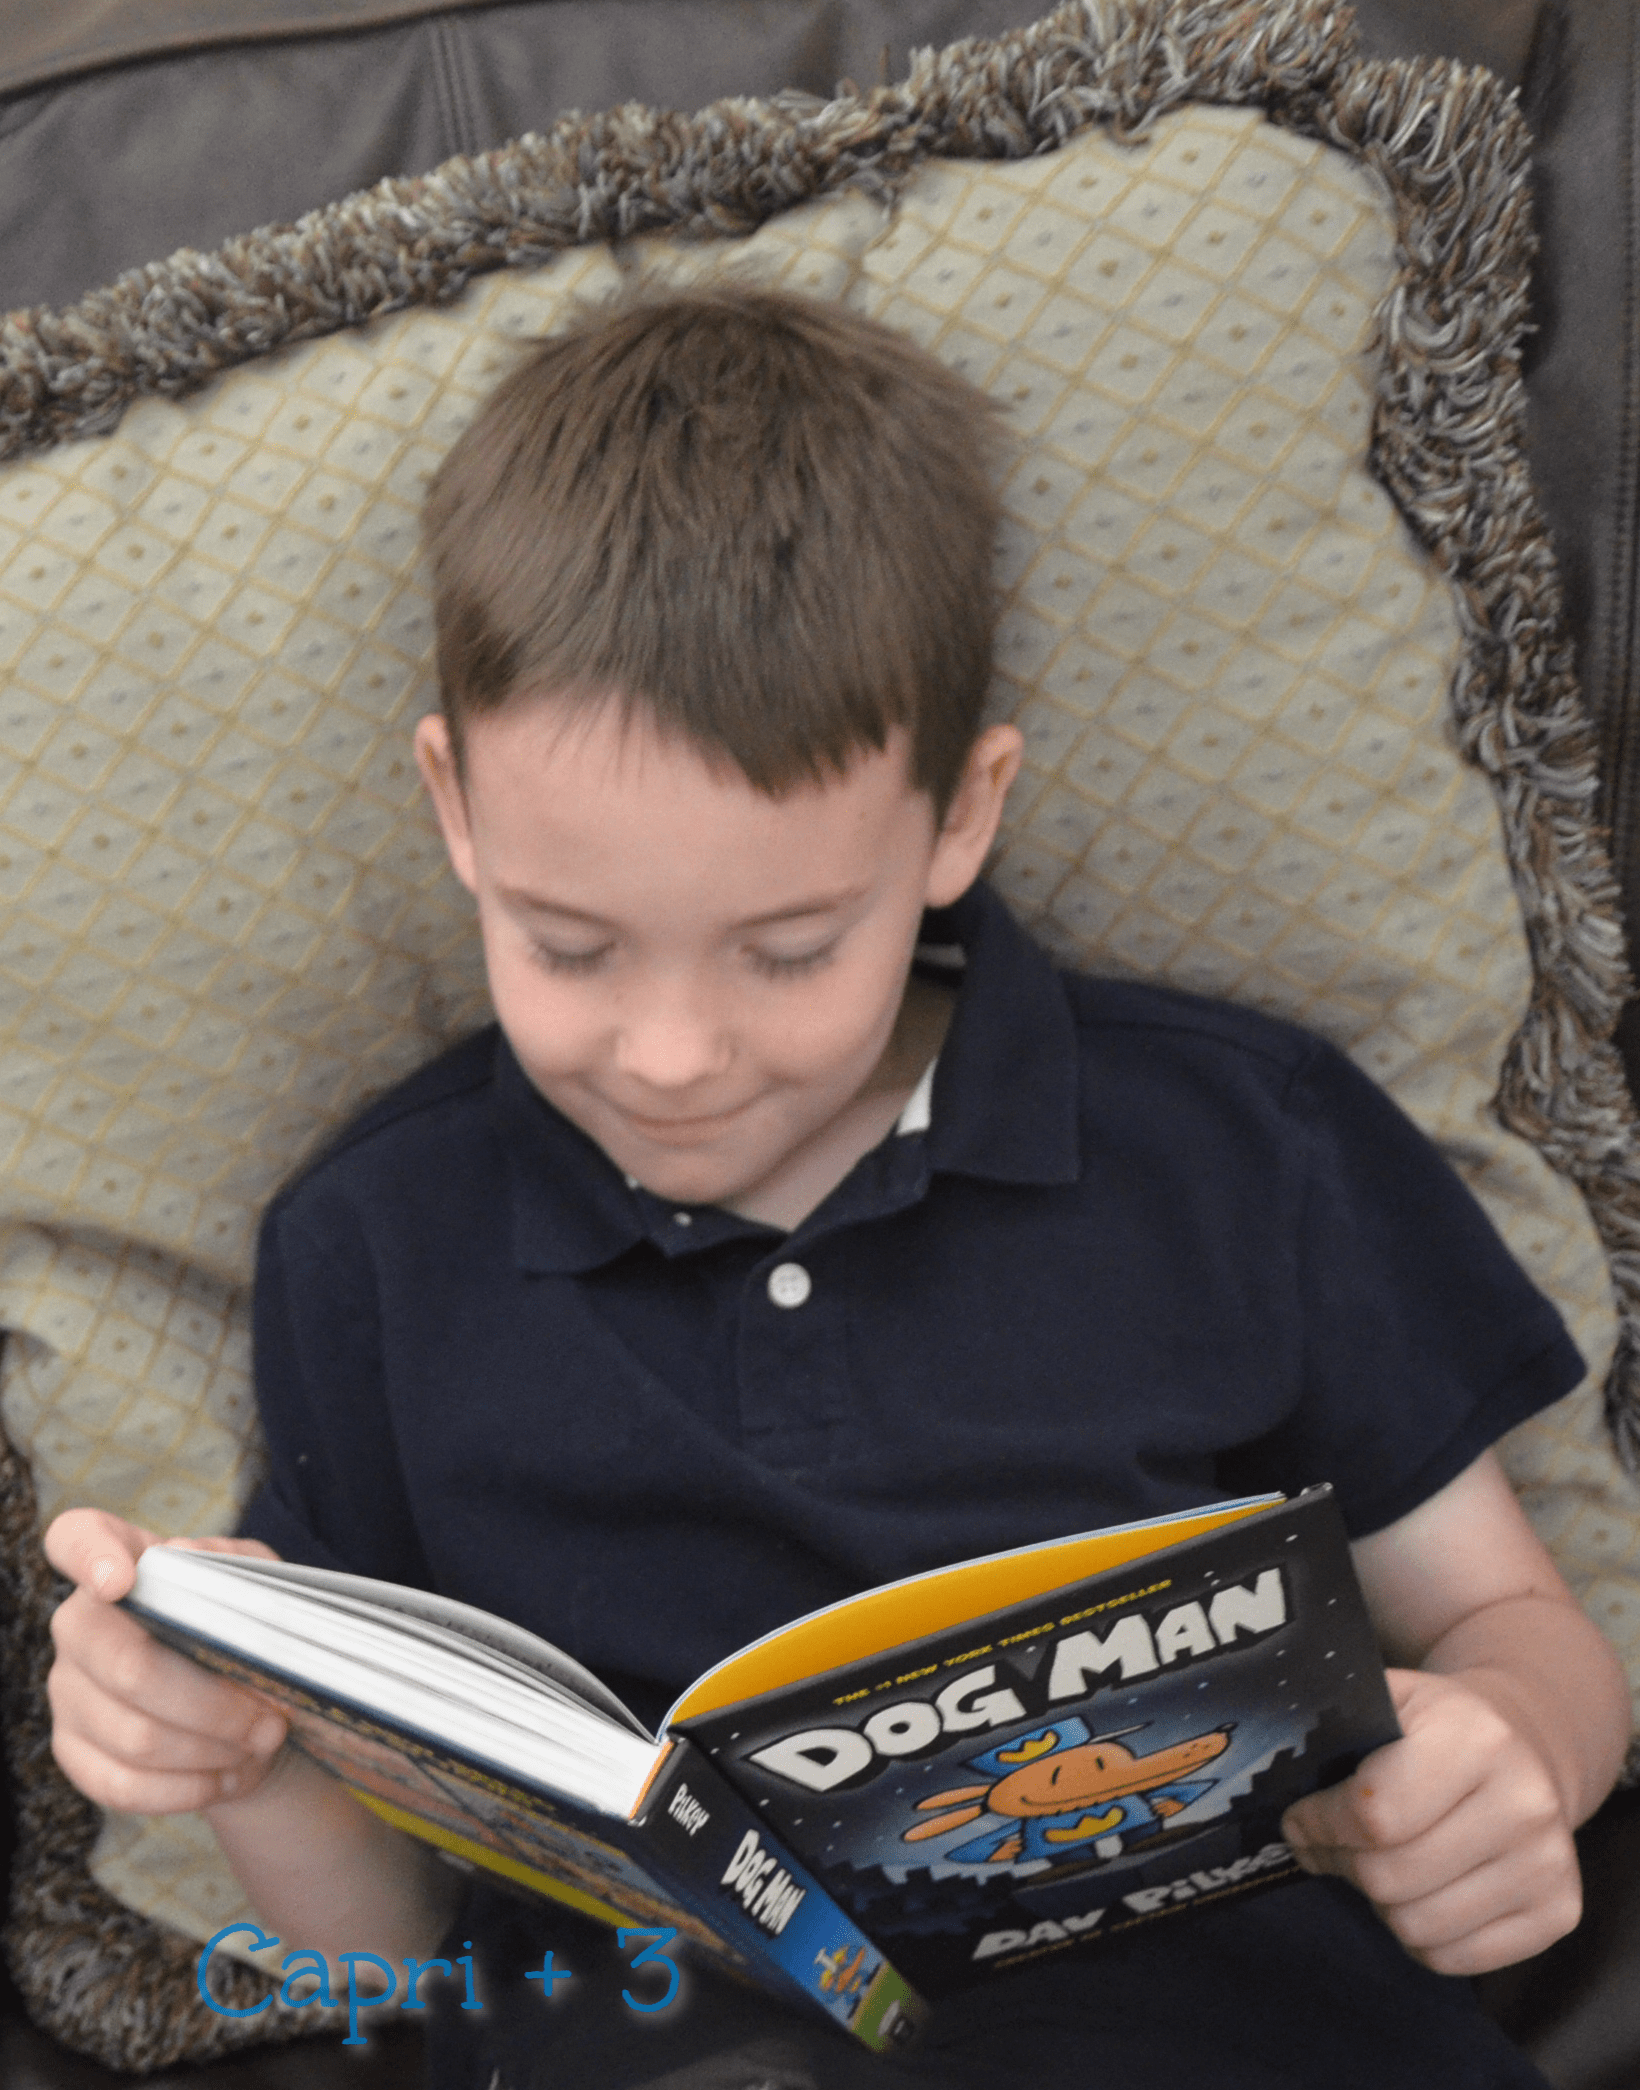 Use the FREE PRINTABLE READING POWER TICKET to help your children learn to read while spending quality time together.